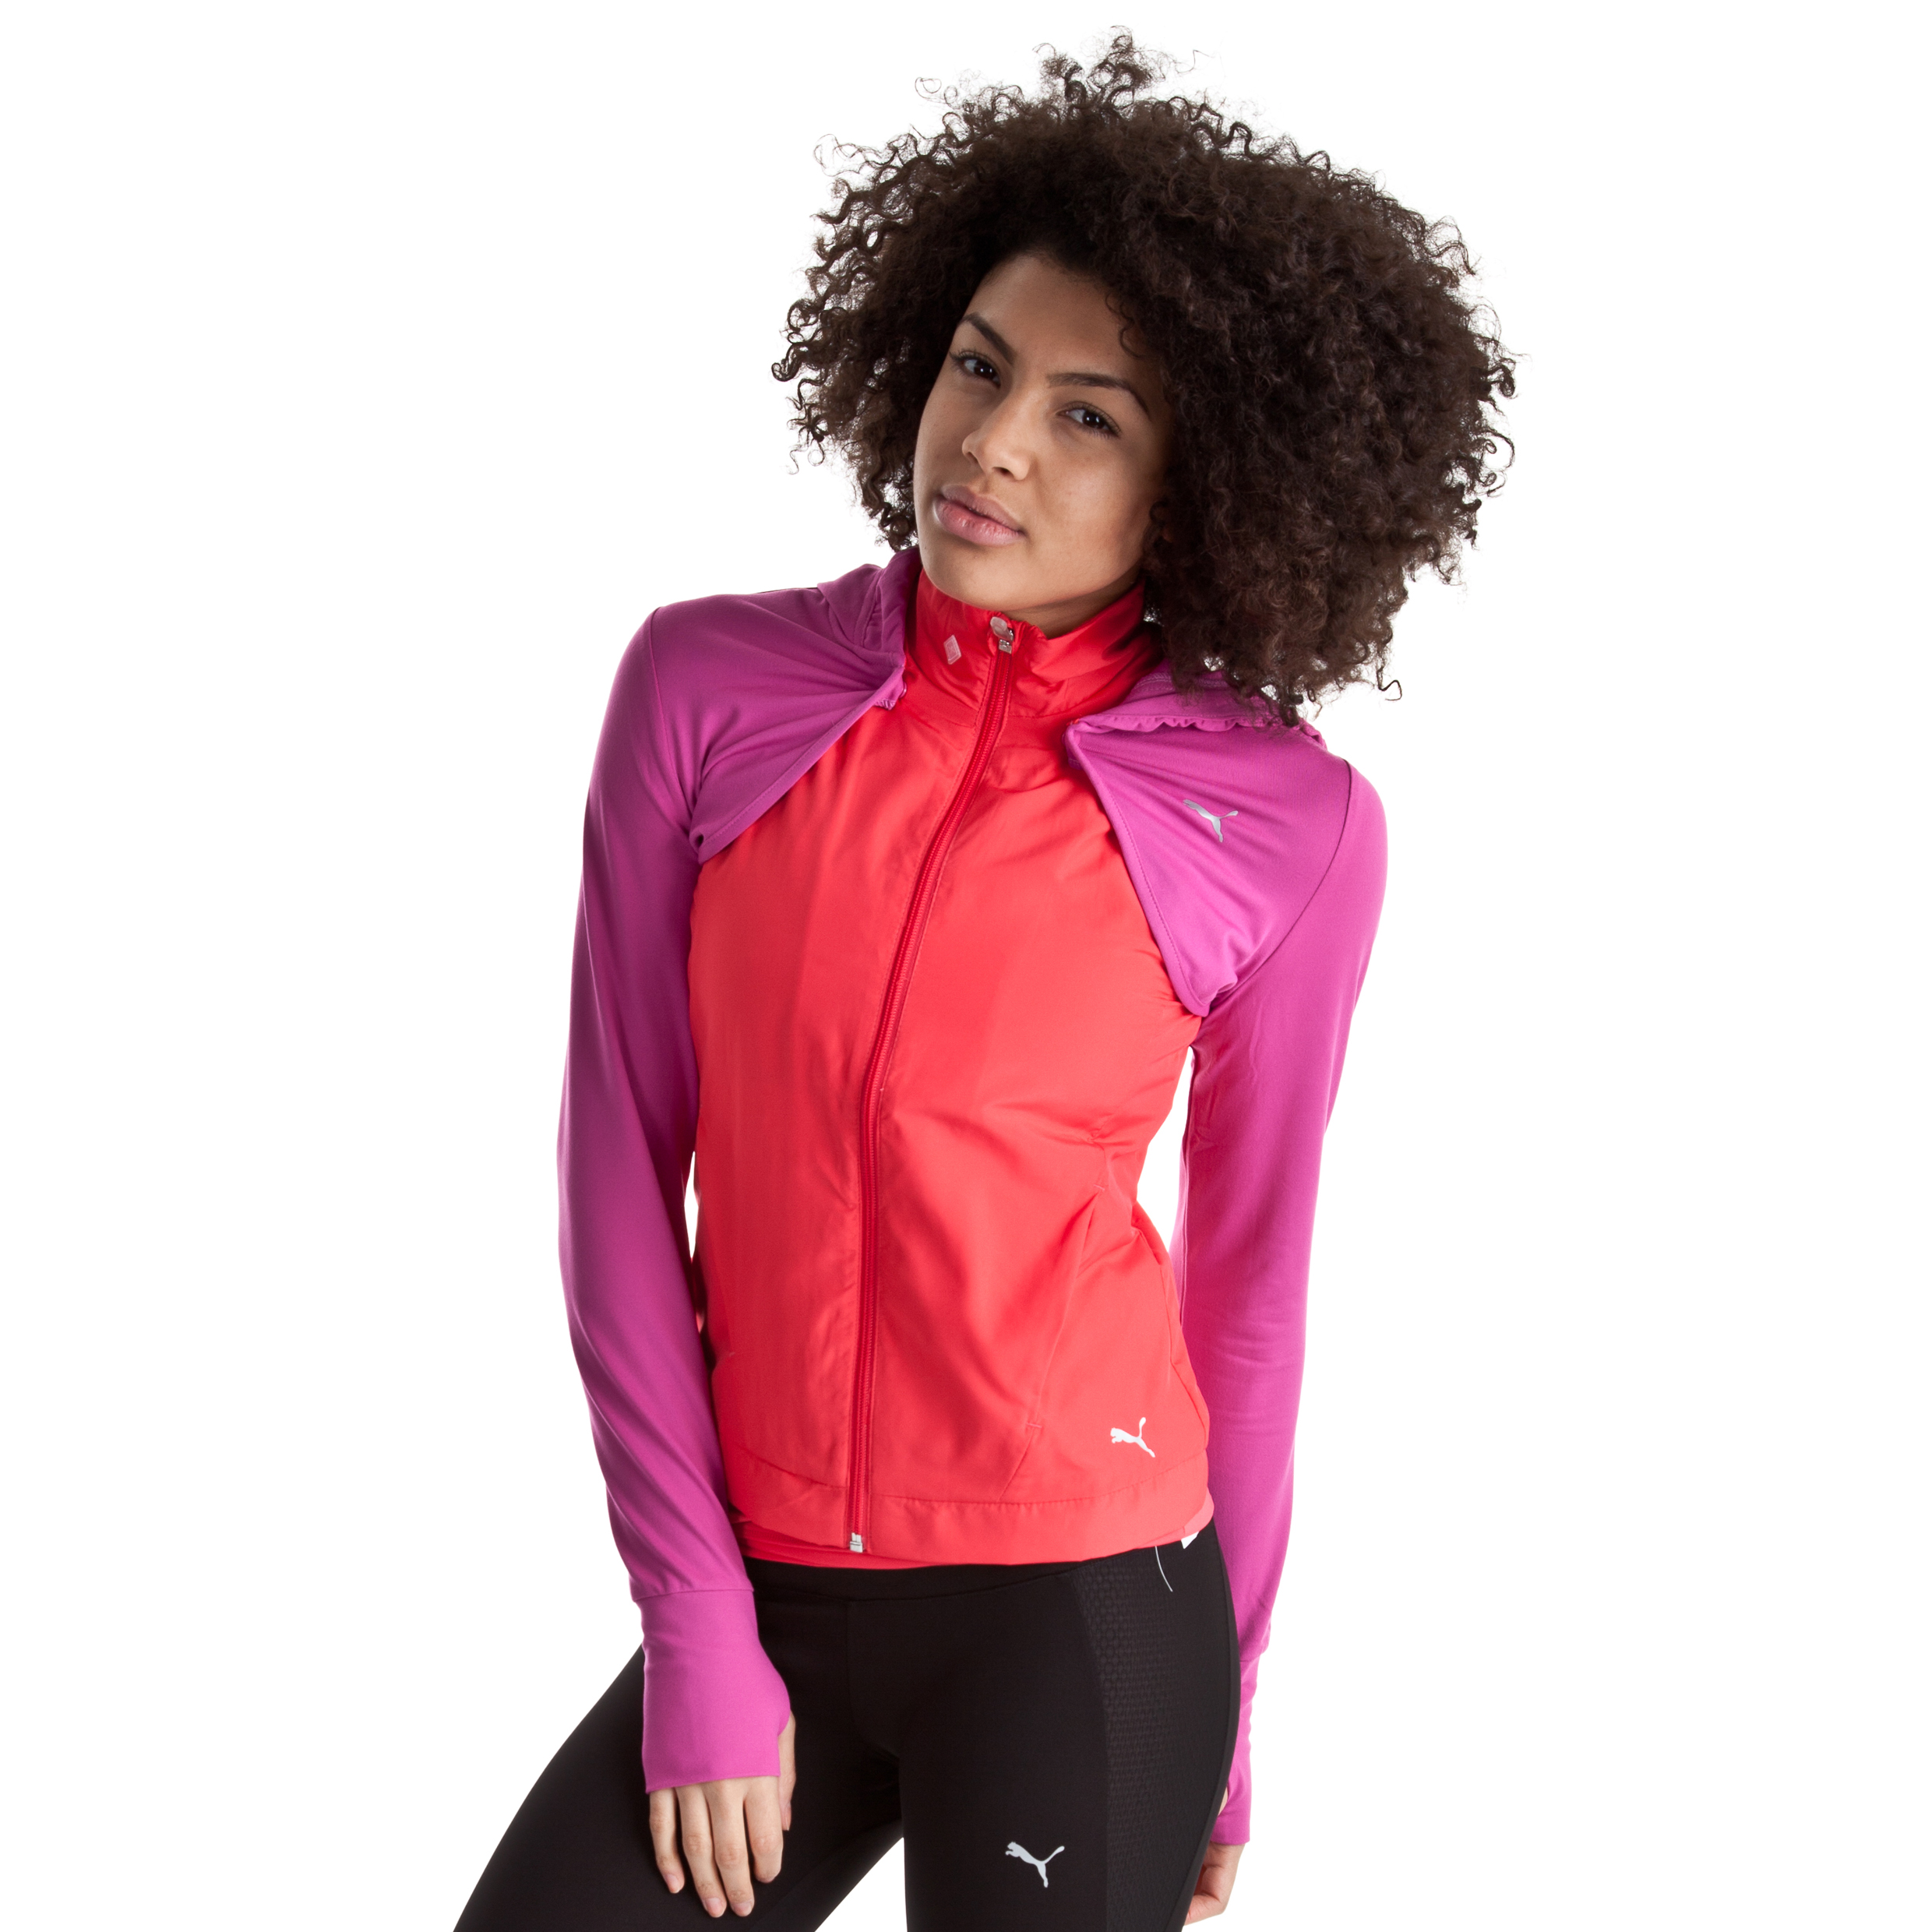 Puma Tech Performance 3 in 1 Jacket - Teaberry Red - Female